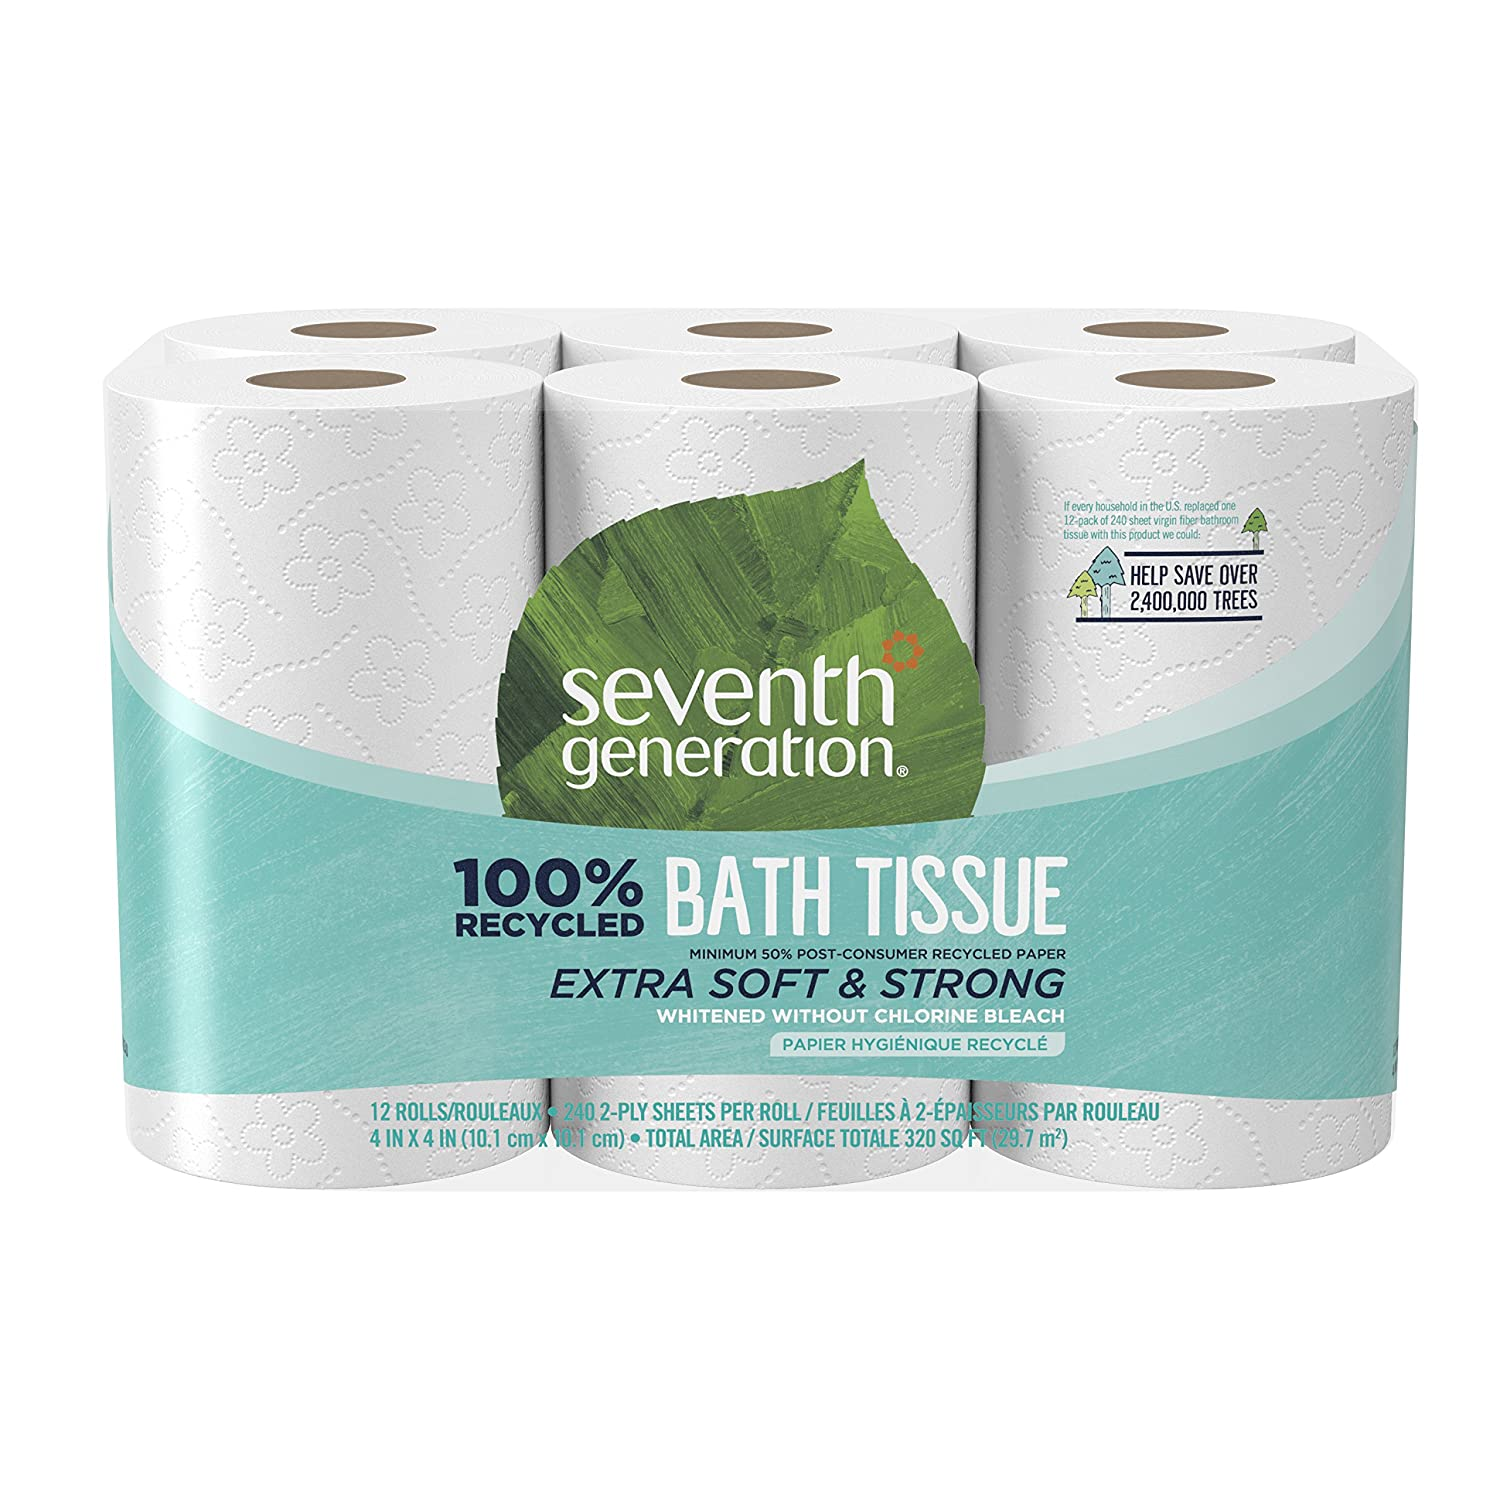 Amazon.com: Seventh Generation Toilet Paper, Bath Tissue, 100 ...